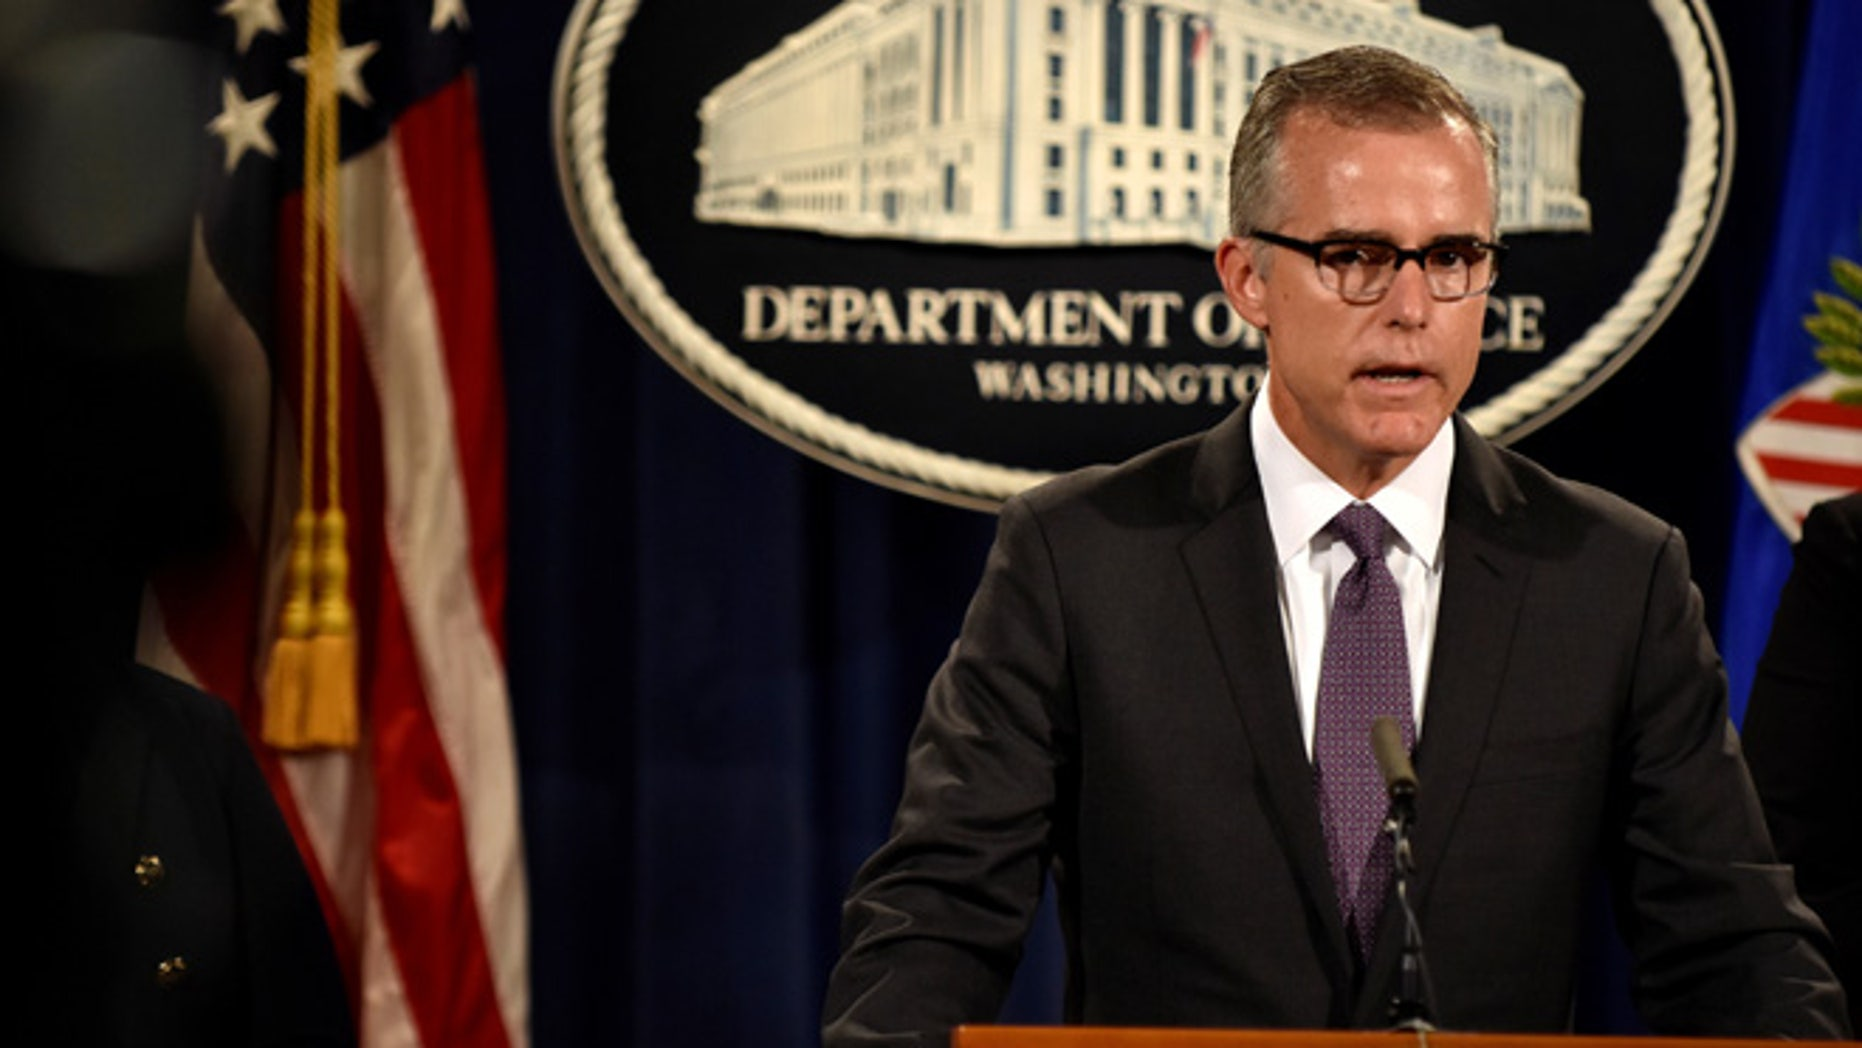 FBI Deputy Director Andrew McCabe is shown at a press conference in Washington on July 20, 2016.